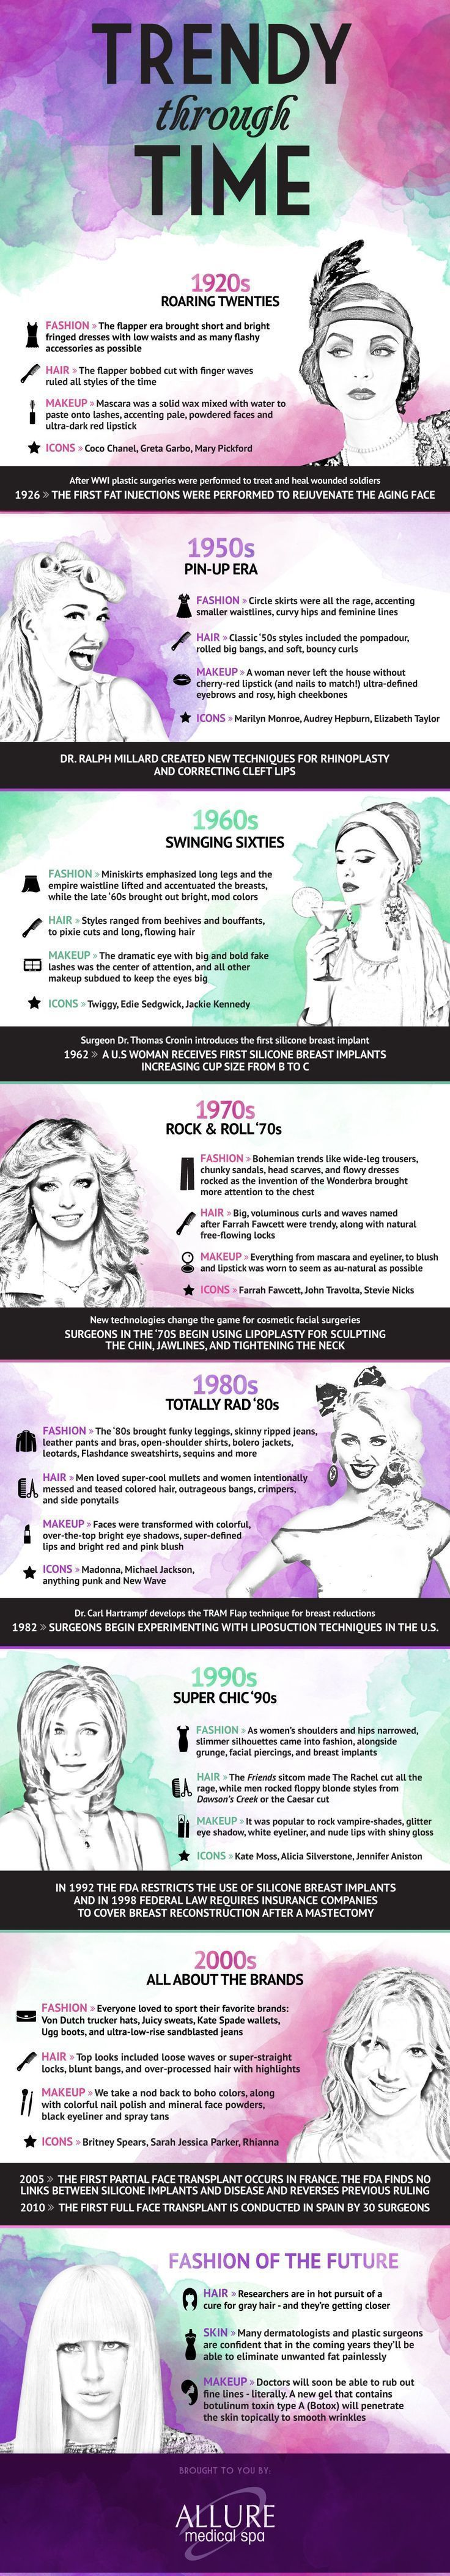 Women's Makeup And Fashion Style Through The Years   Fashion Trends - Beauty T...